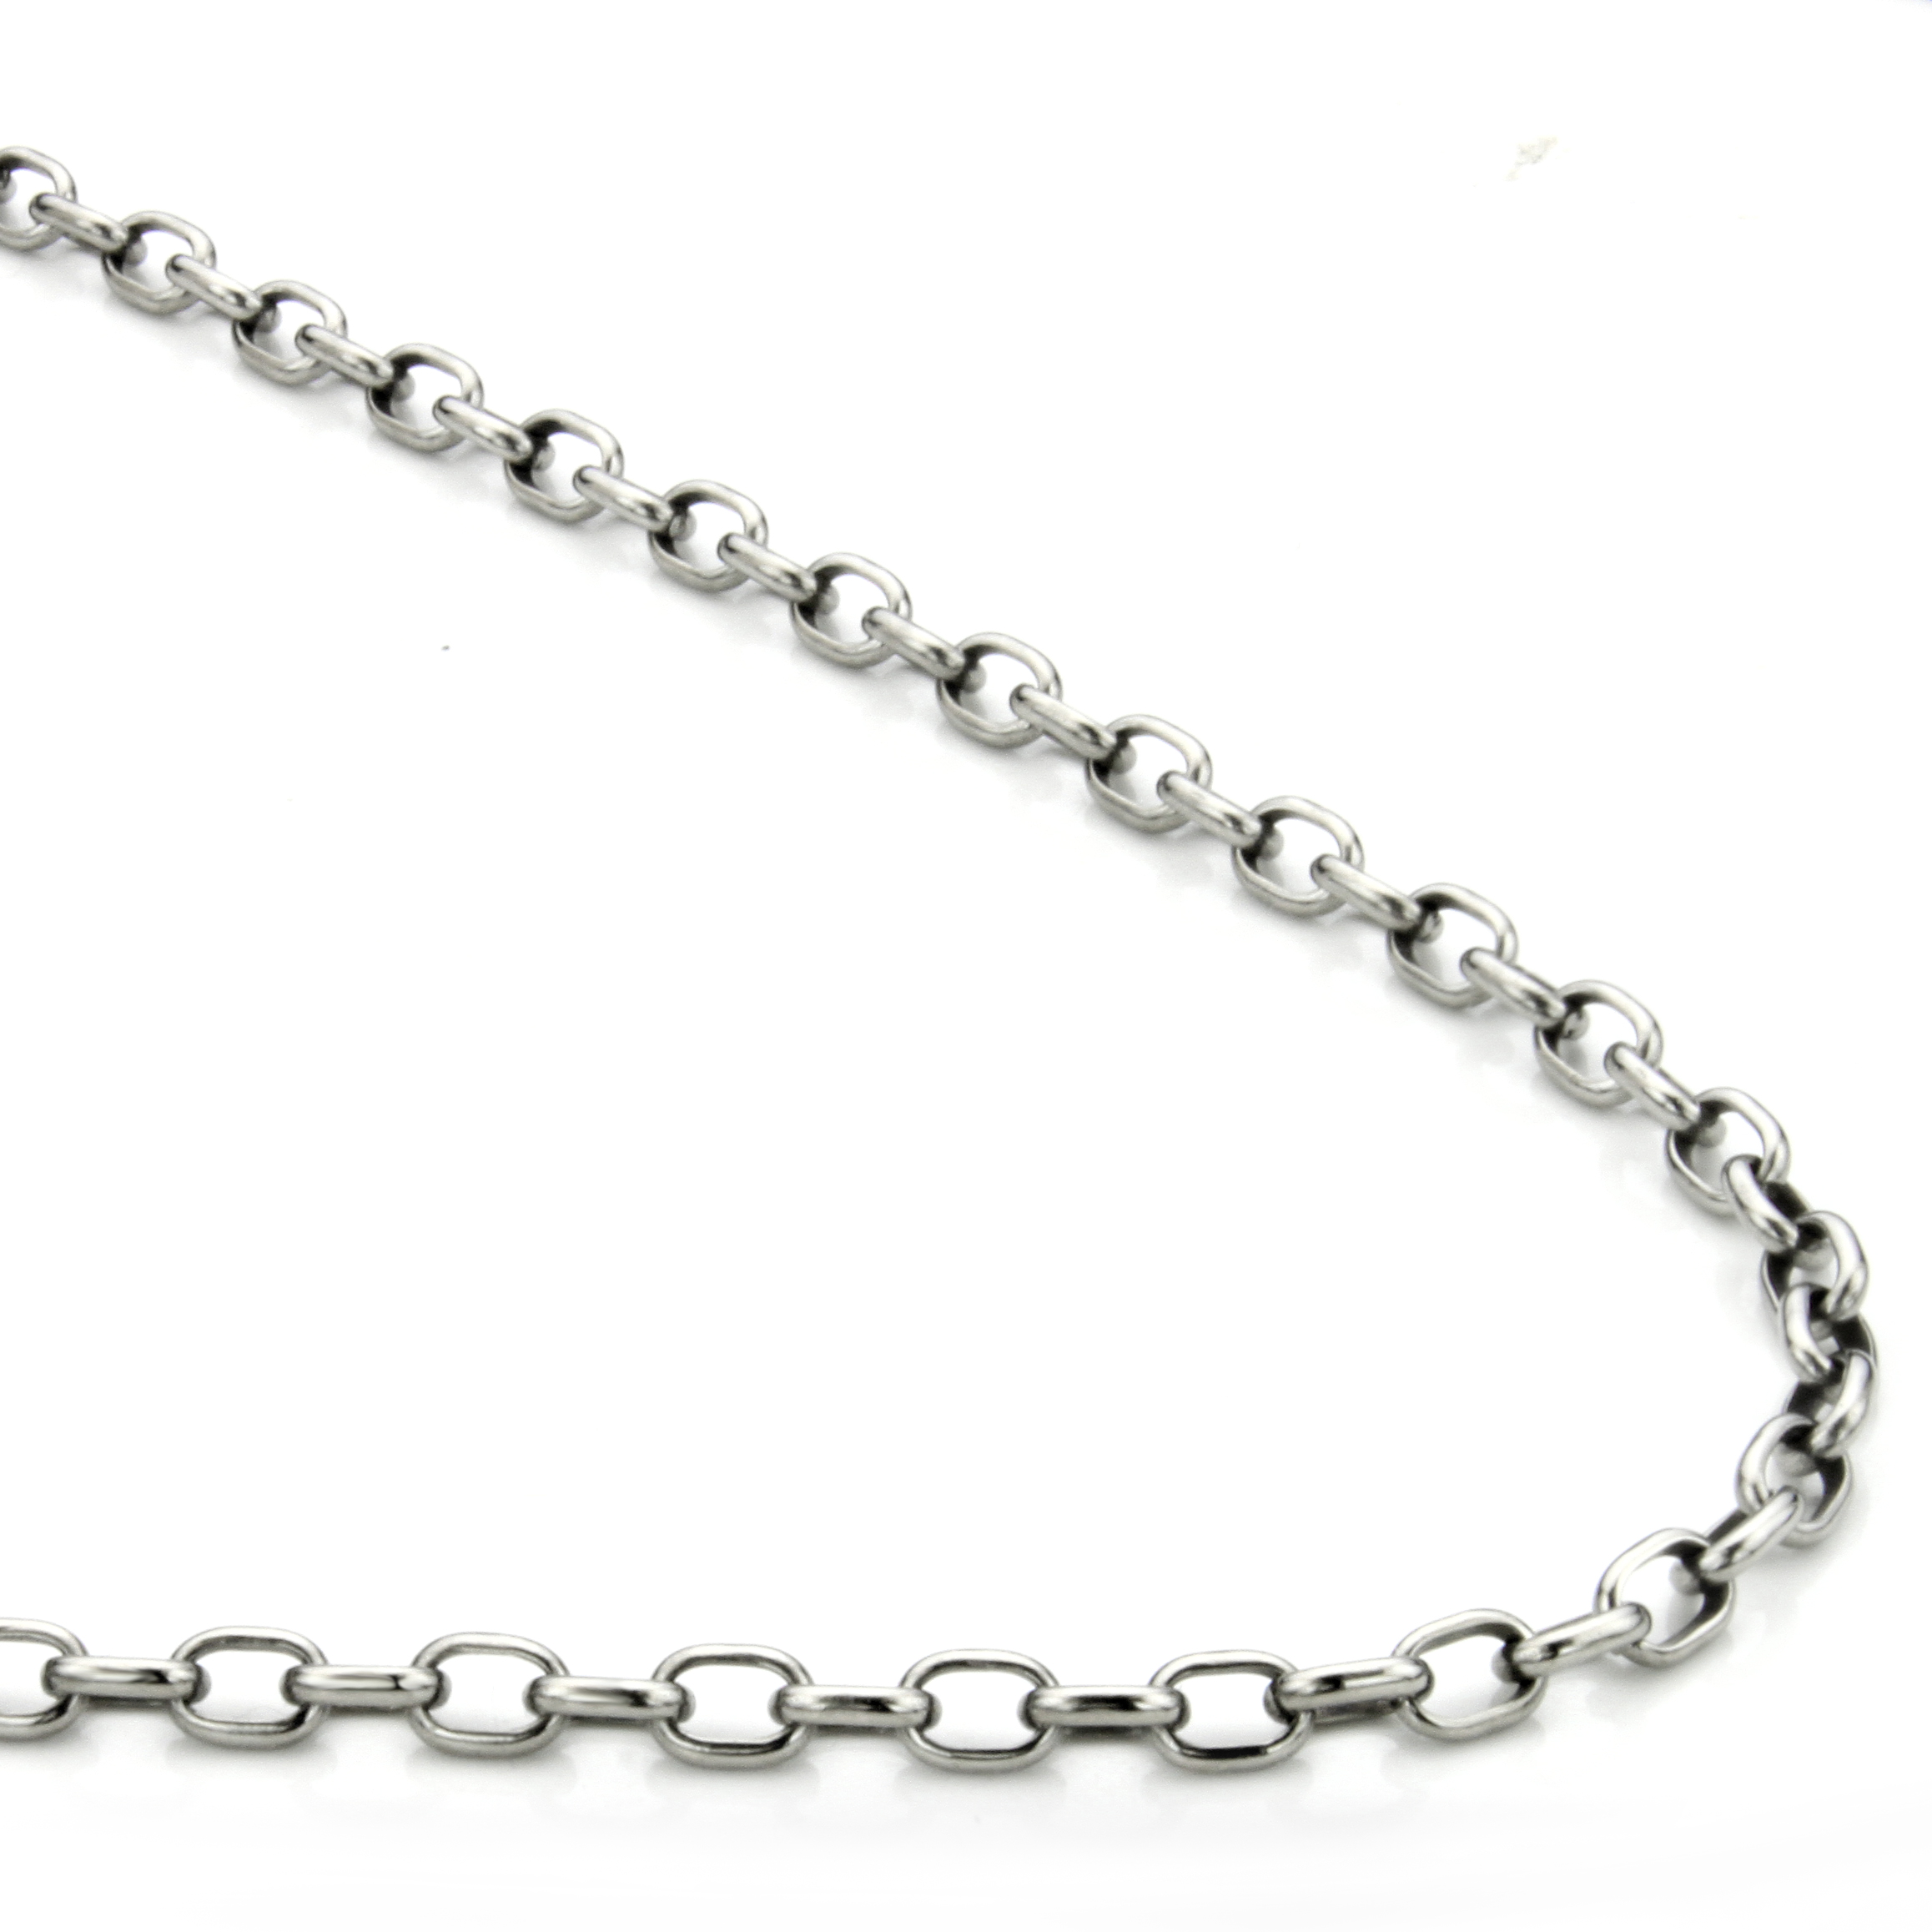 lyst link product glamazon oval chains normal in jewelry necklace ippolita sterling silver gallery metallic